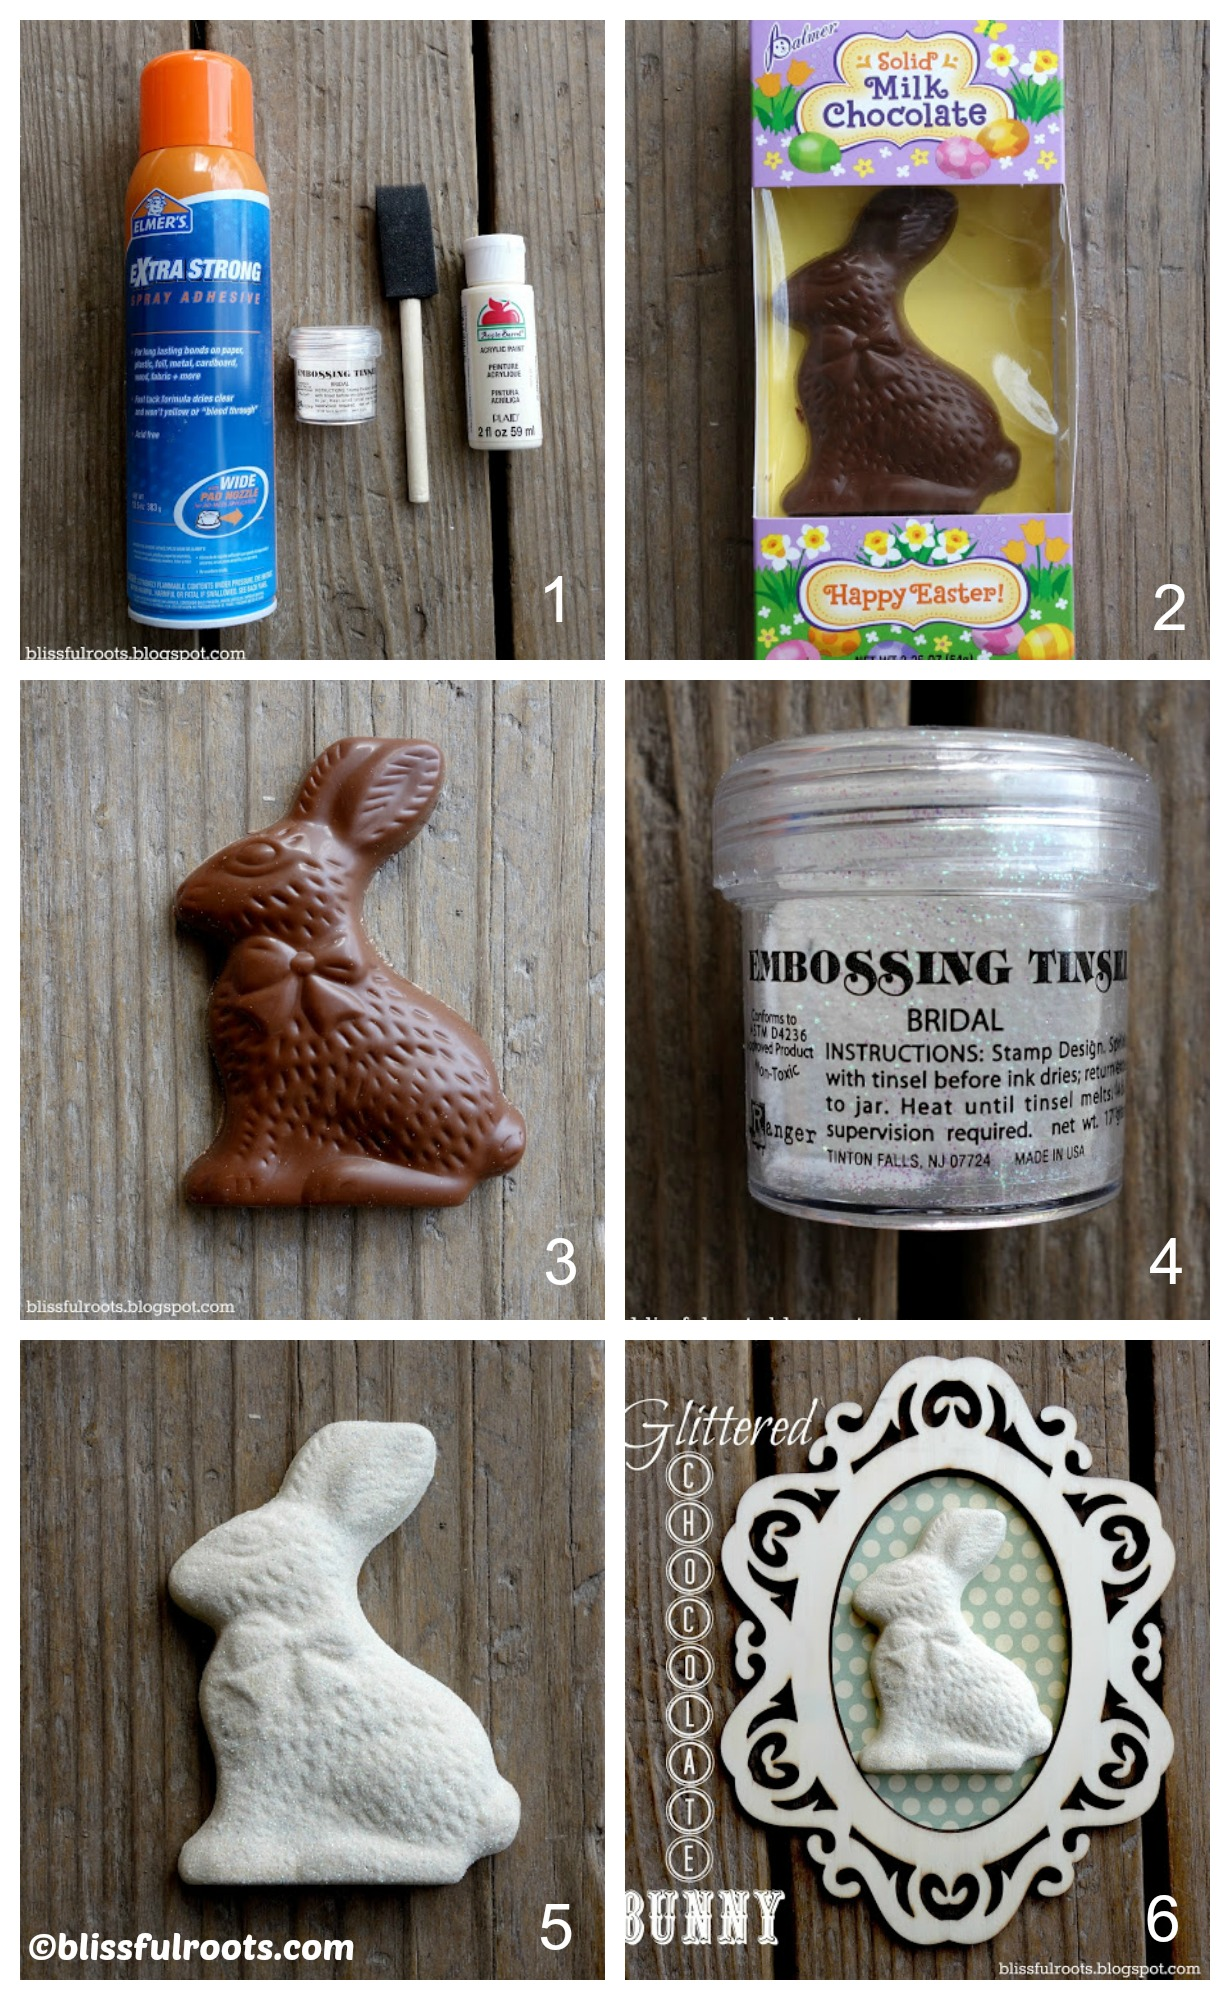 How to make Glittered Chocolate Bunnies